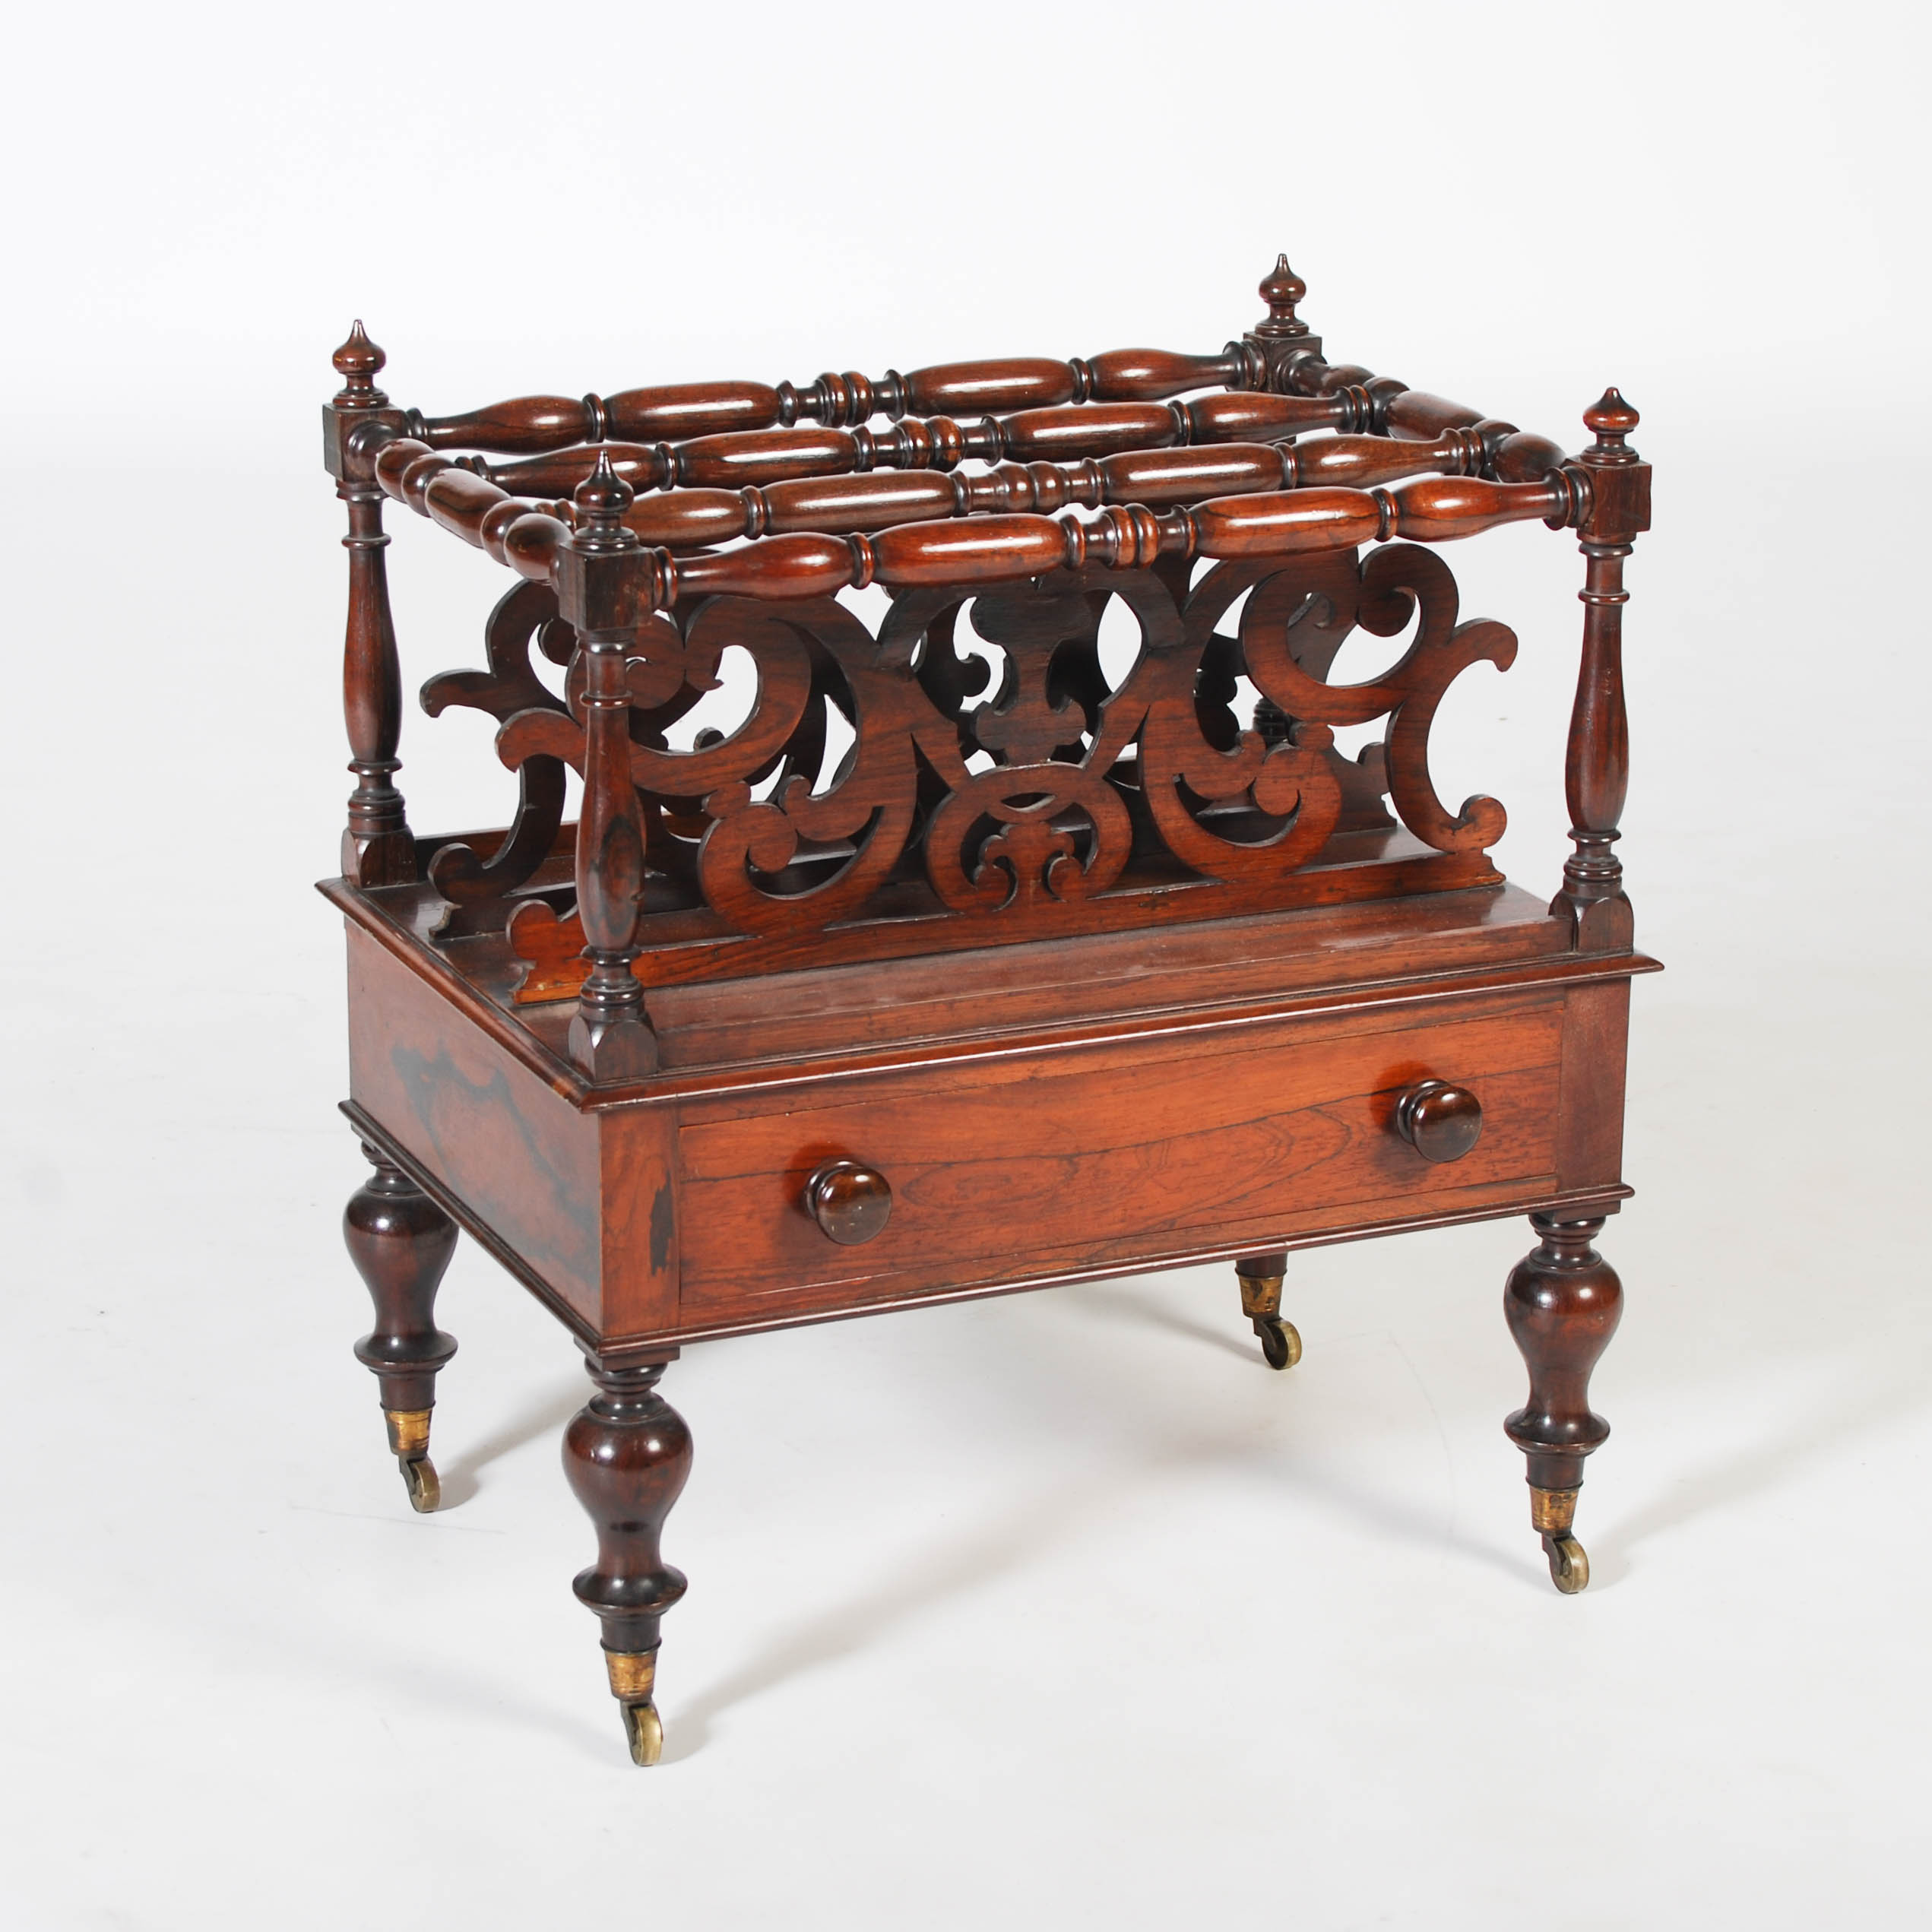 Lot 39 - A 19th century rosewood Canterbury, the rectangular top with four turned divisions above a single